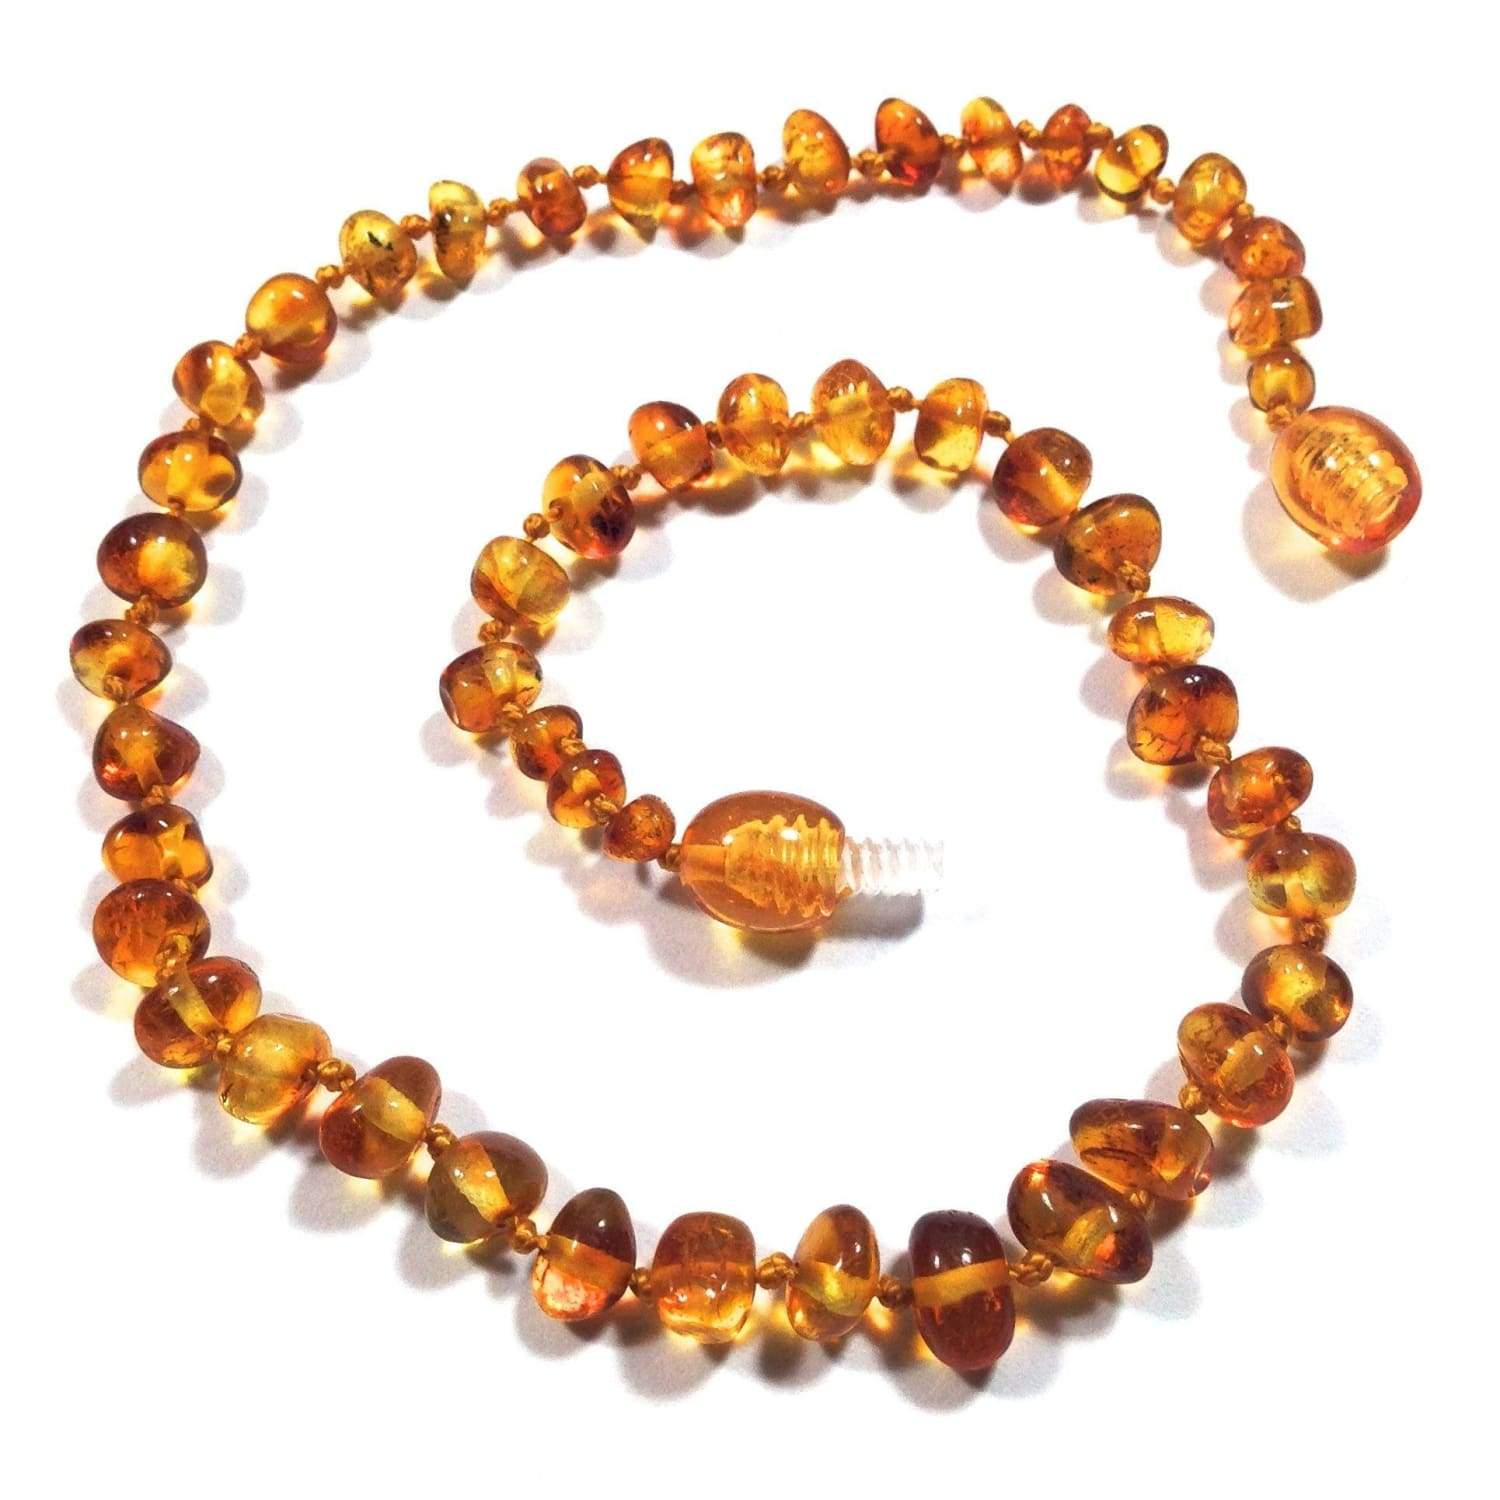 The Best Price on Baltic Amber